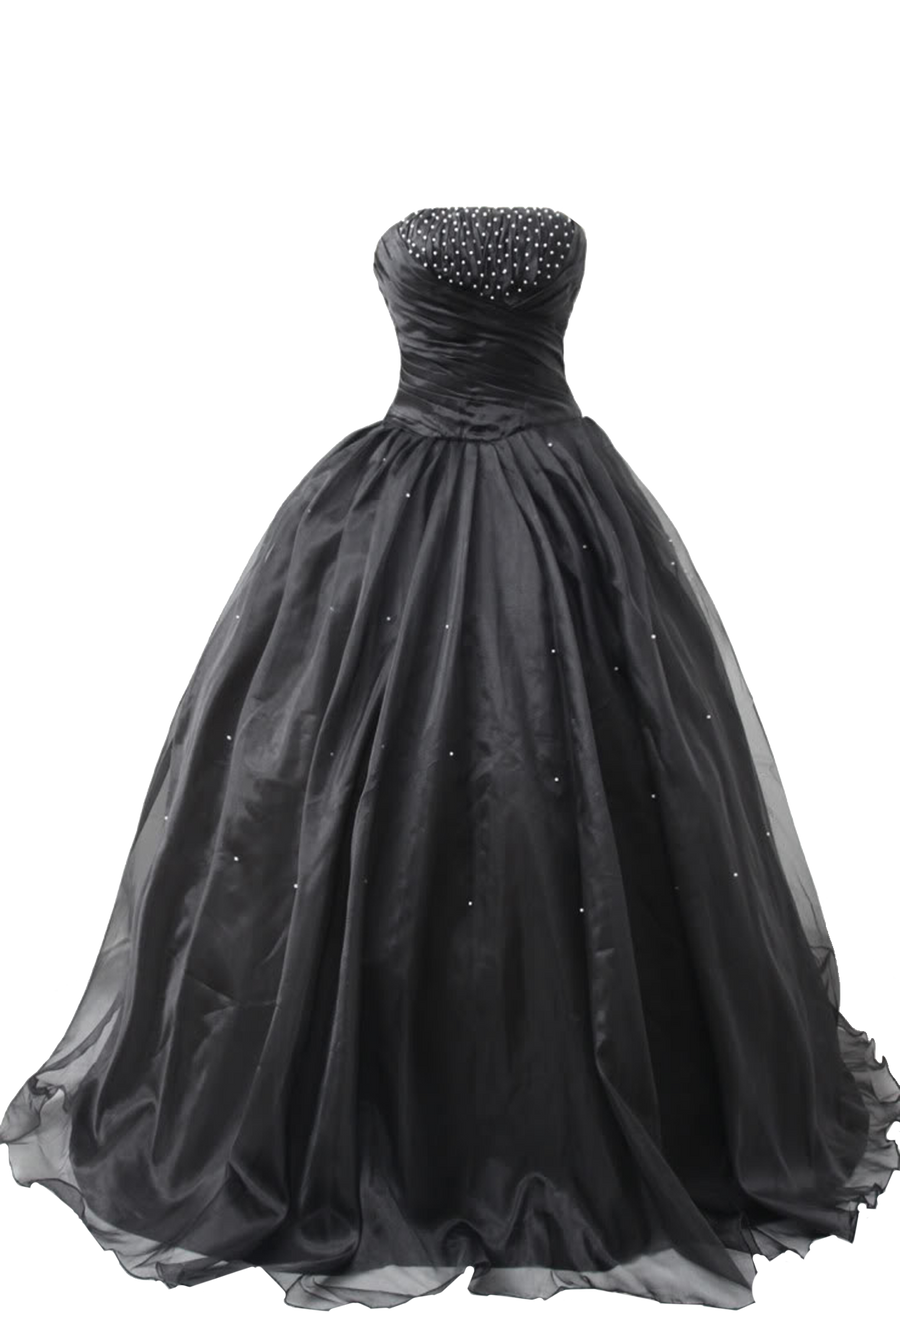 Black Ball Gown 4 PNG by Vixen1978